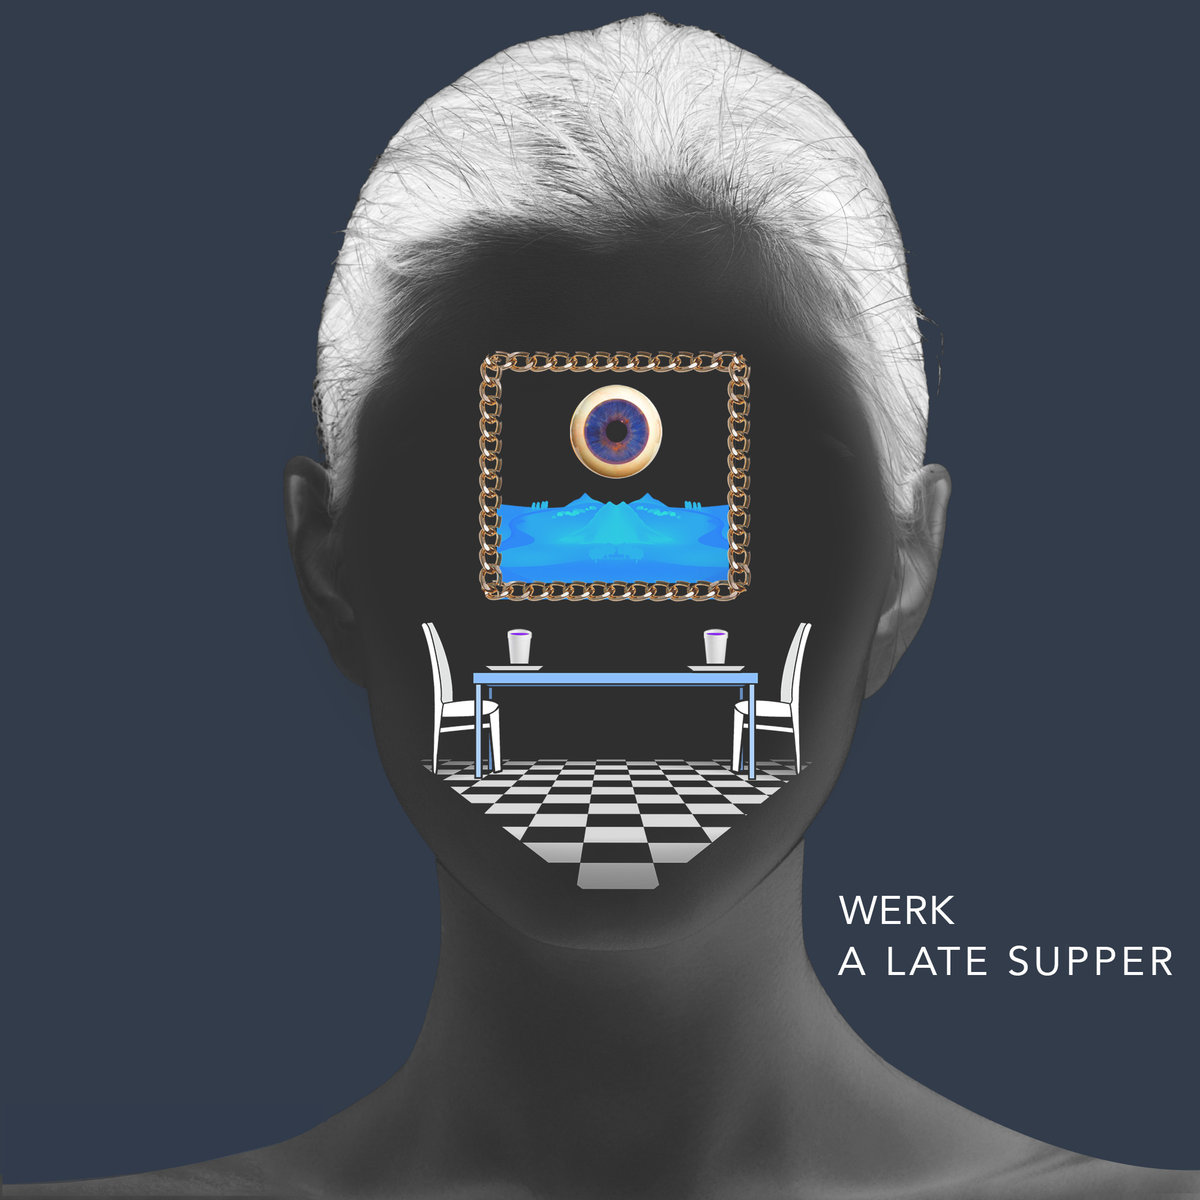 WERK - A Late Supper @ 'A Late Supper' album (electronic, dubstep)